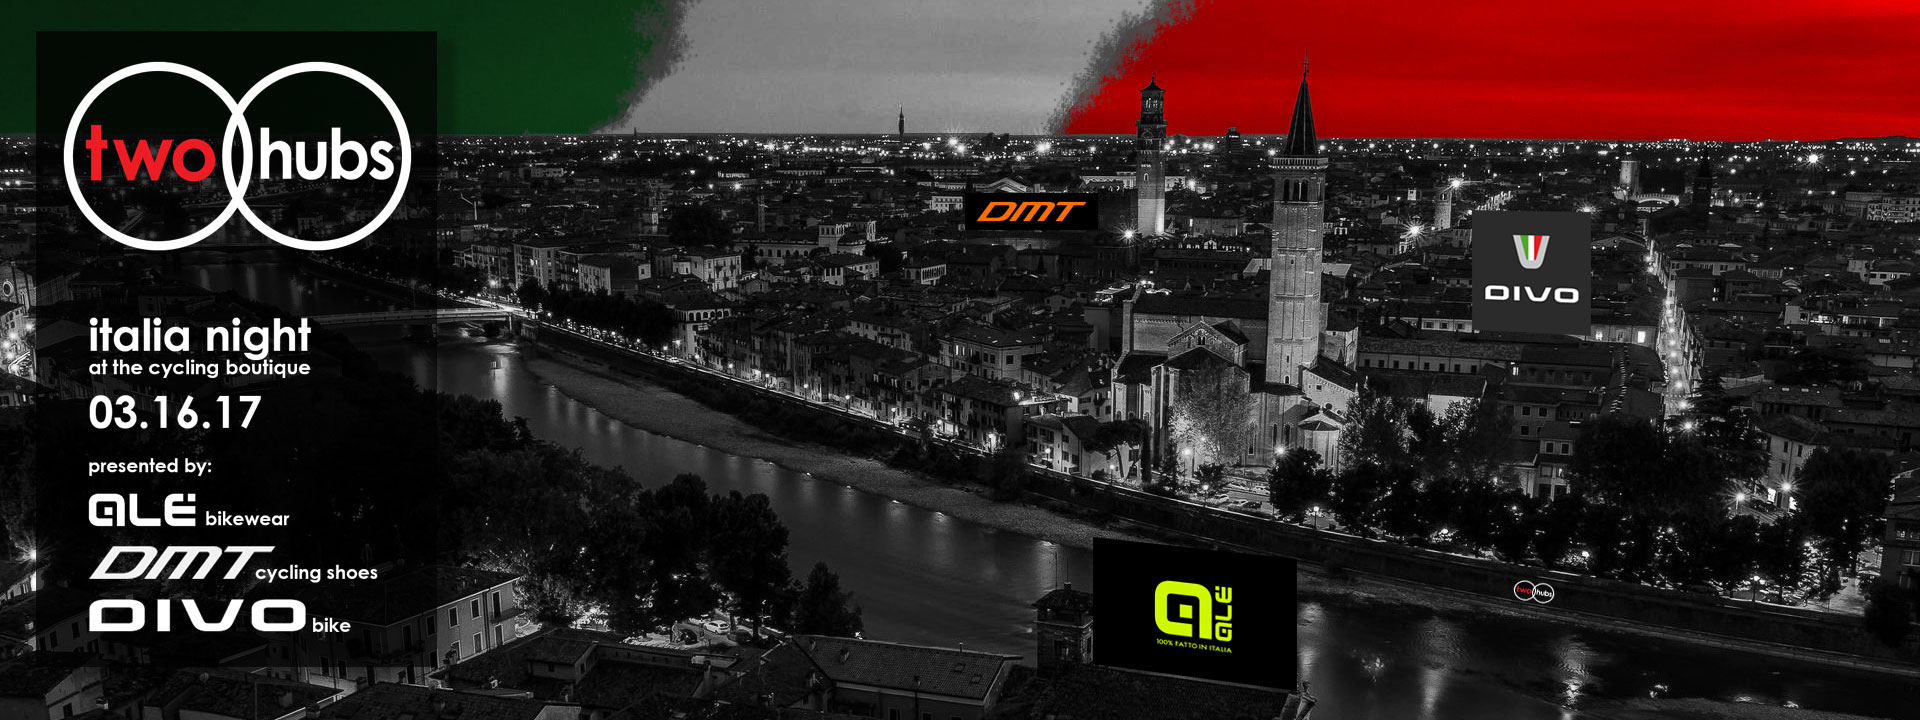 2017 italia night presented by twohubs!